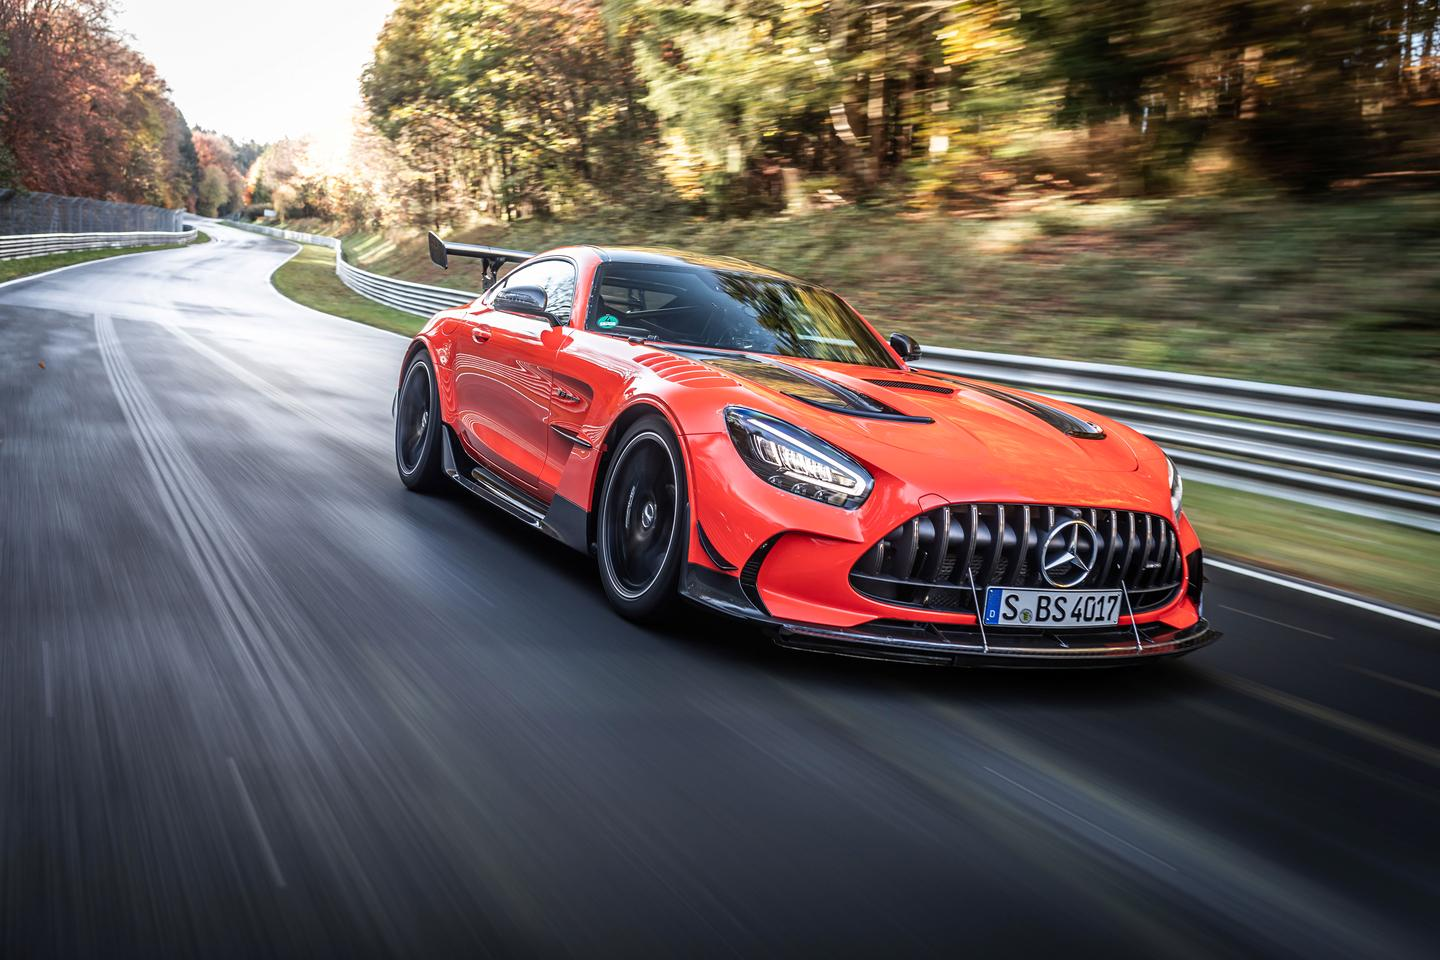 Mercedes-AMG has wasted little time in showing what the GT Black Series can do